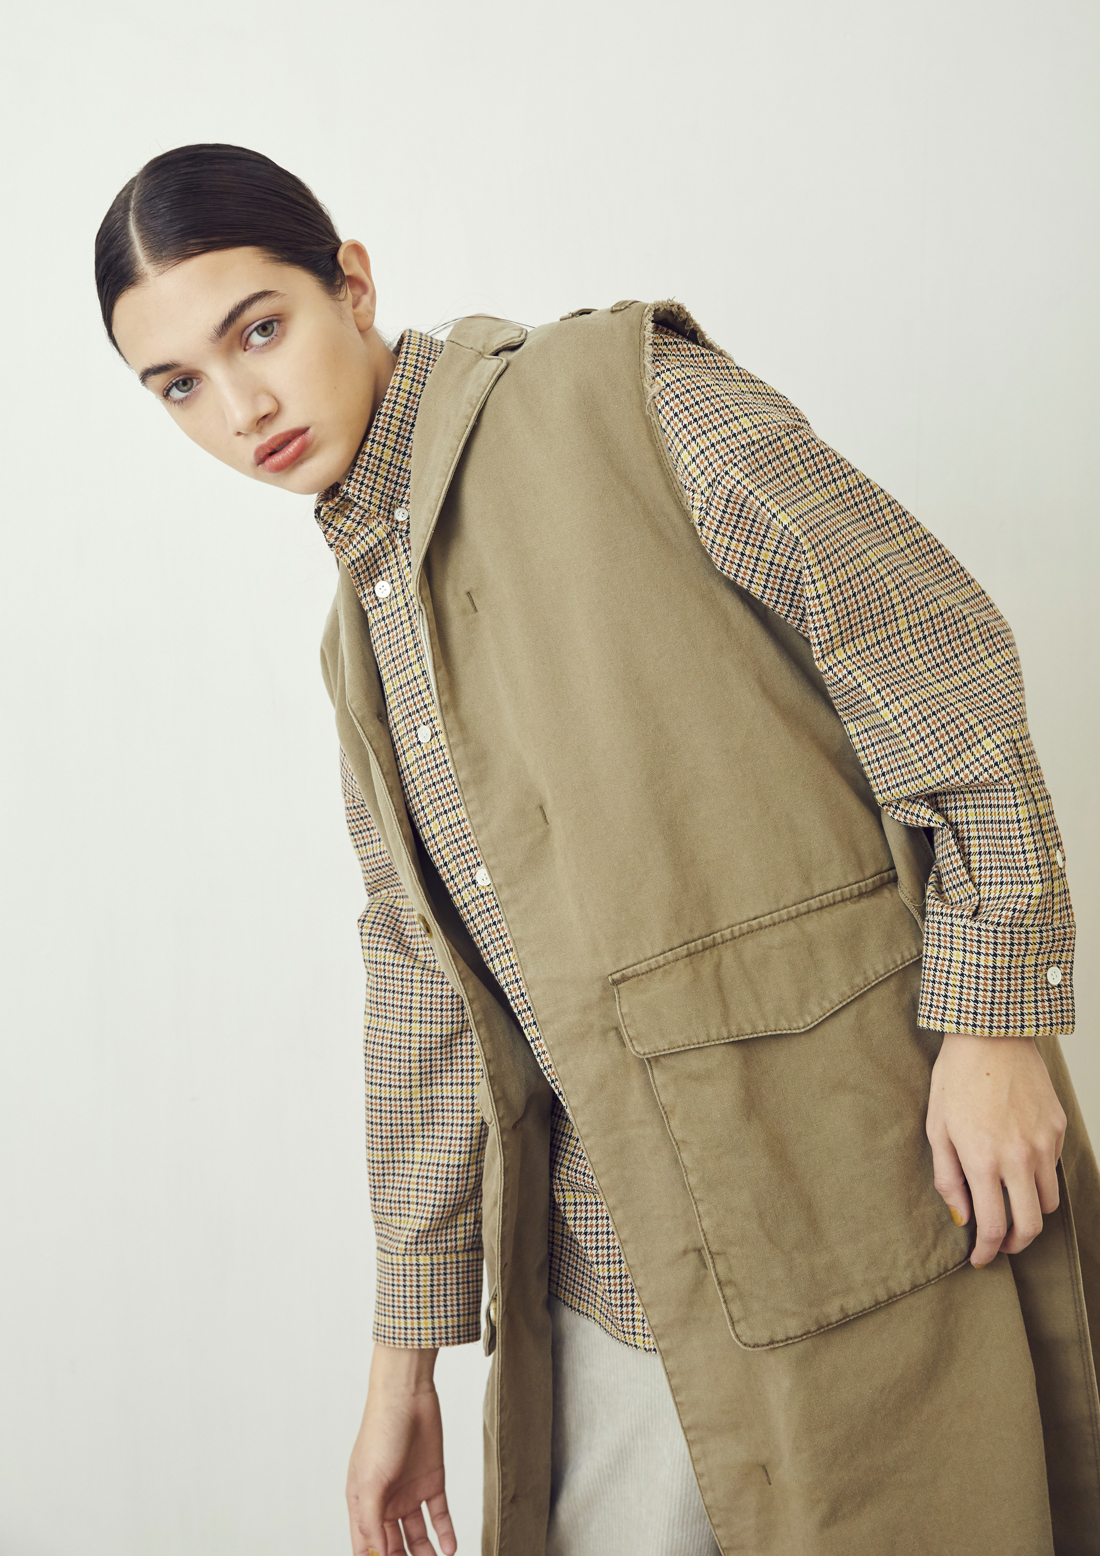 SUPP. no one else : Fall Winter Coming